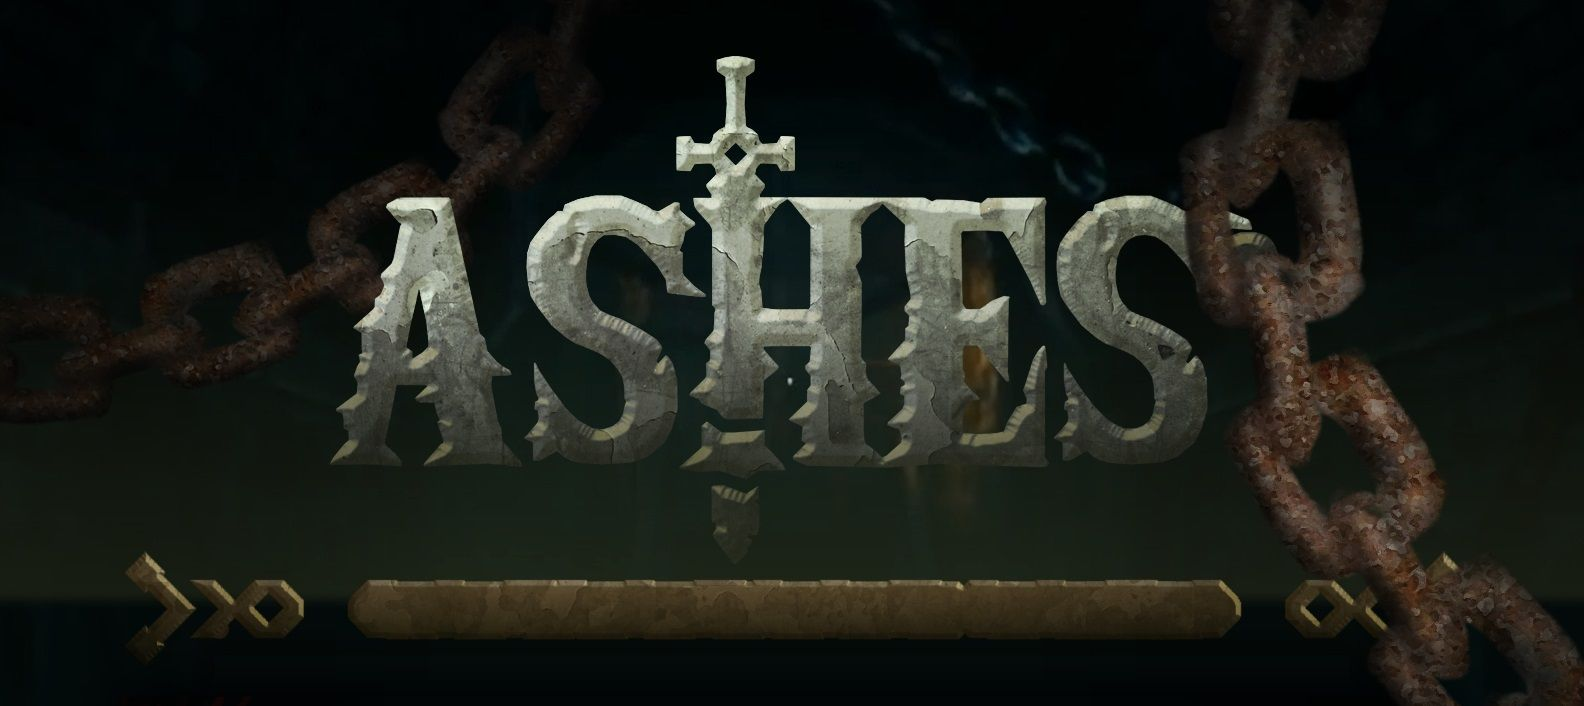 Ashes (Q3 2018) - Ashes is the newest game from Windlimit the creators of Talewind. A first person adventure inspired by Dear Esther, Condemned:Blood origins and The elder scrolls series, and adventure with a very strong narrative component.Play through a dungeon filled with puzzles, enemies and platforms to discover the mysterious past of the protagonist.Studio: Windlimit StudiosRole: Composer, Sound Design